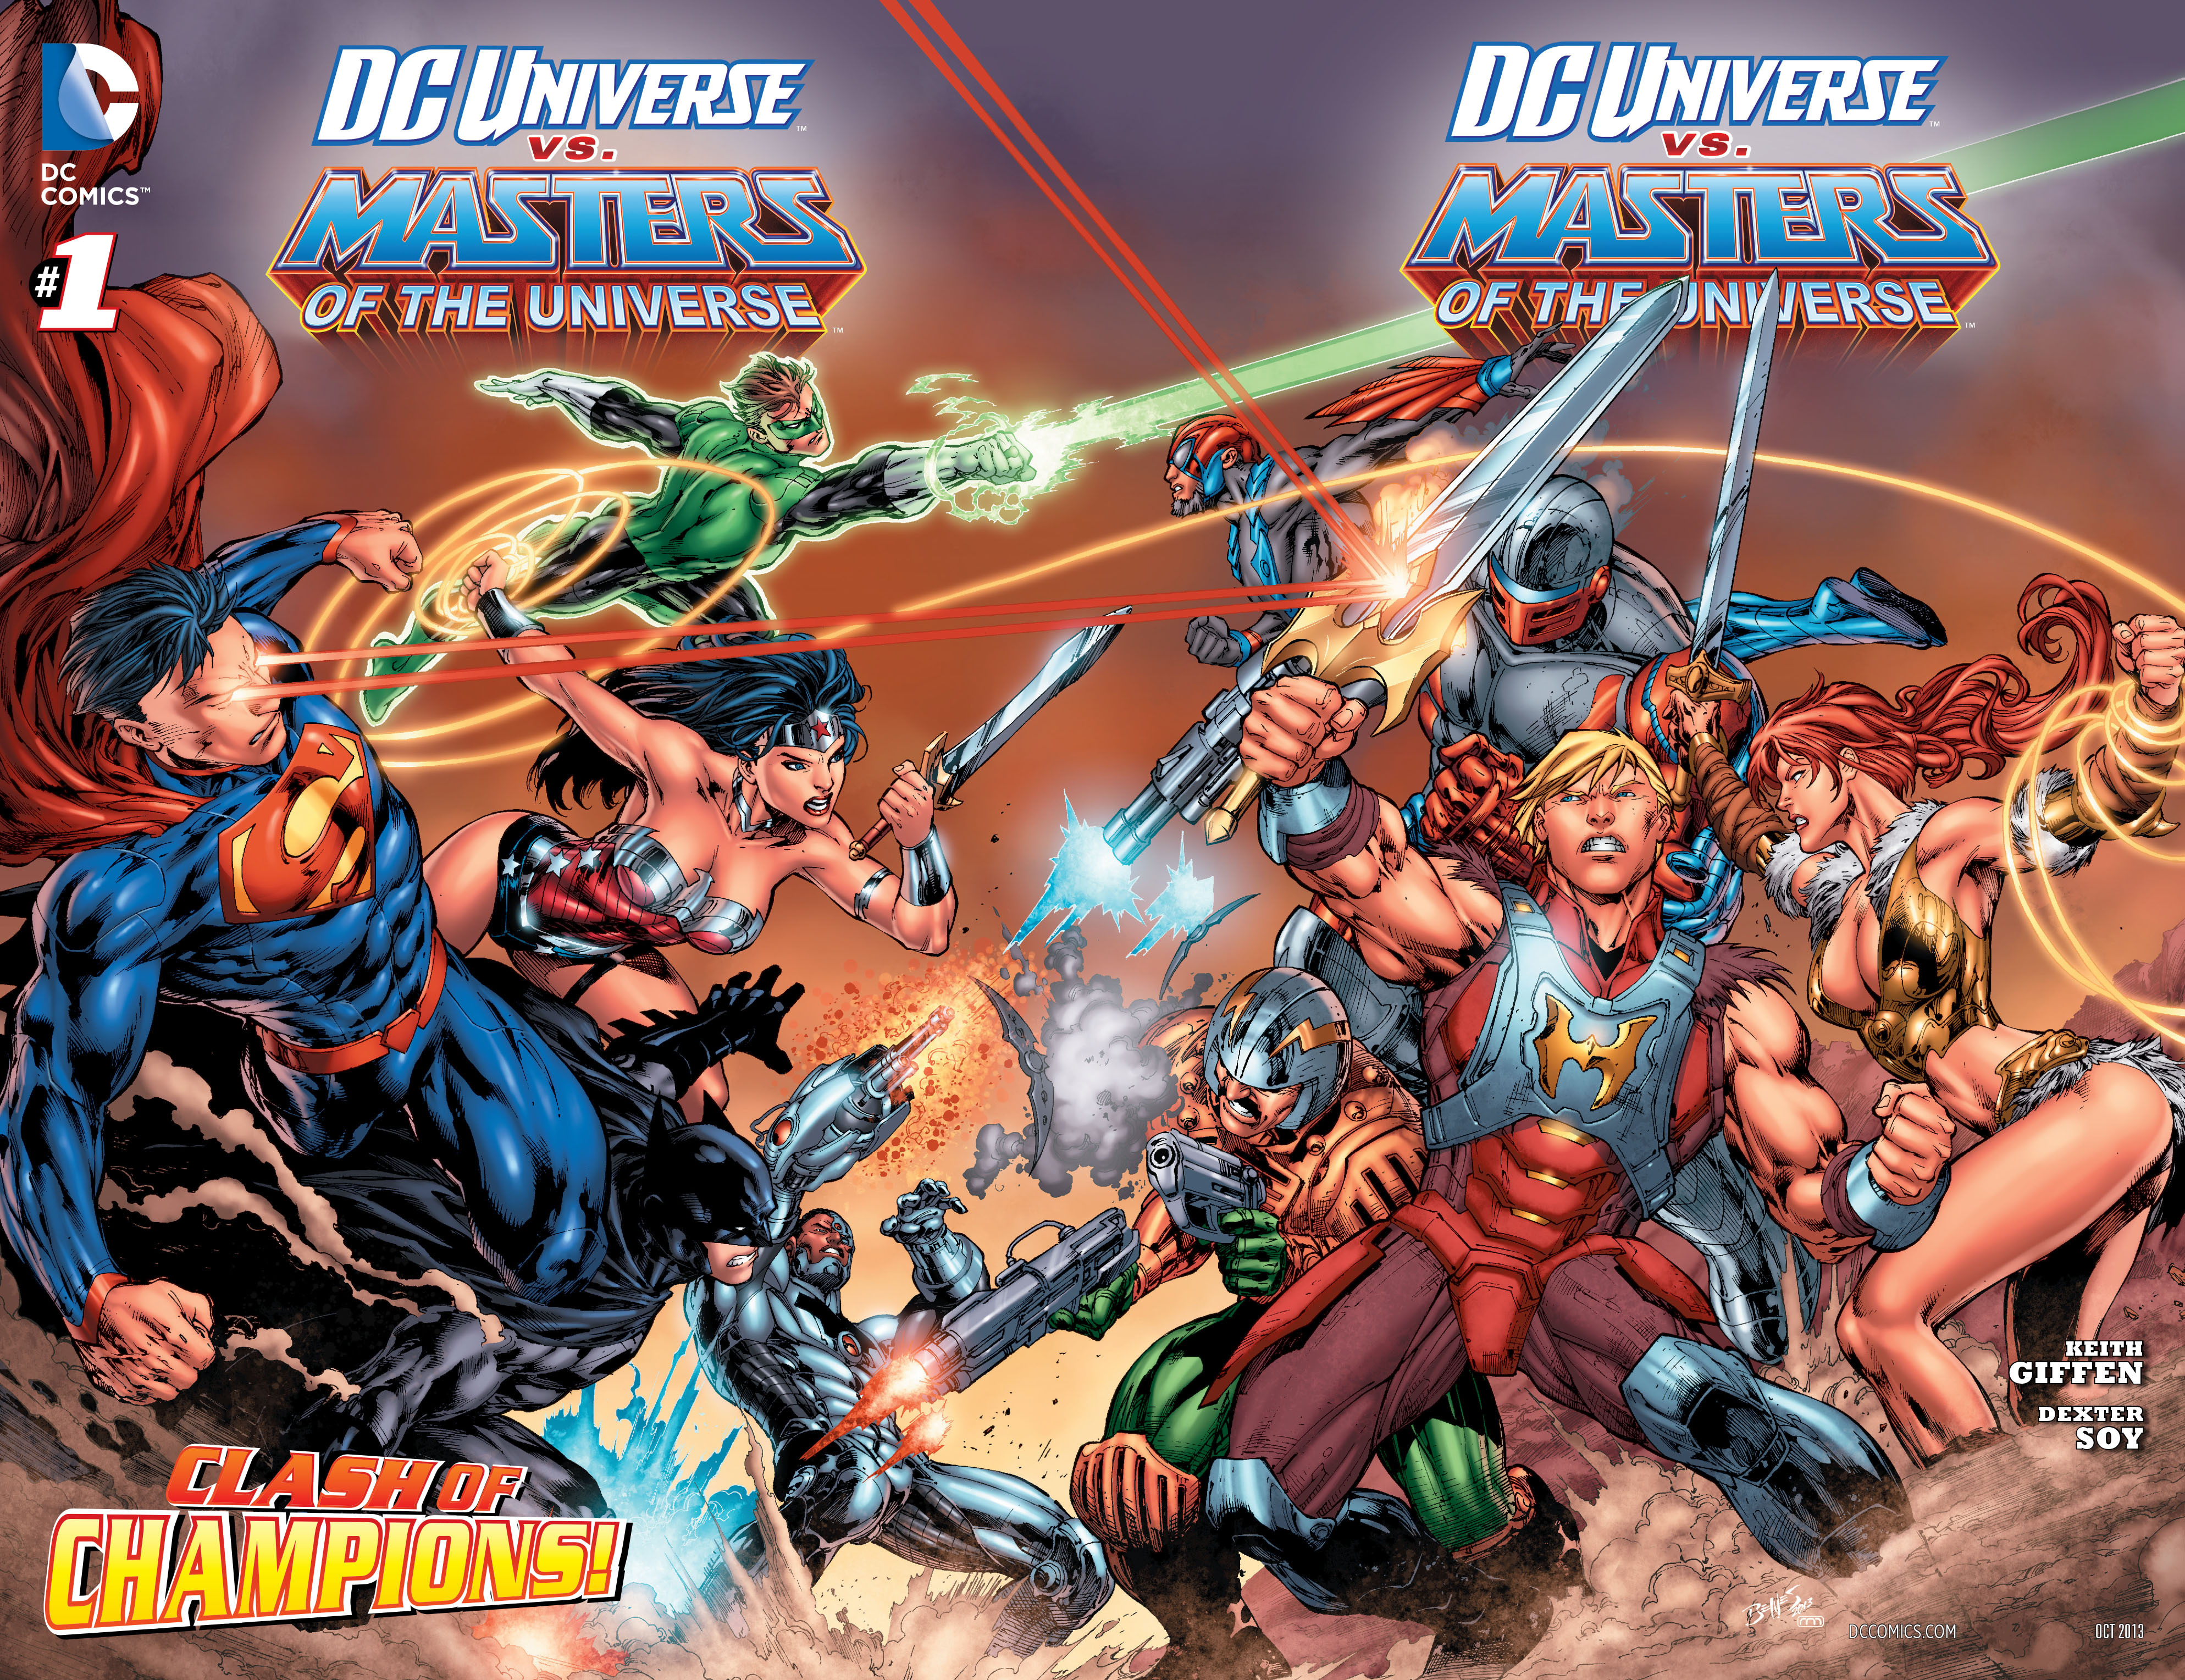 http://img2.wikia.nocookie.net/__cb20130911222102/marvel_dc/images/d/de/DC_Universe_vs._The_Masters_of_the_Universe_Vol_1_1_Full.jpg